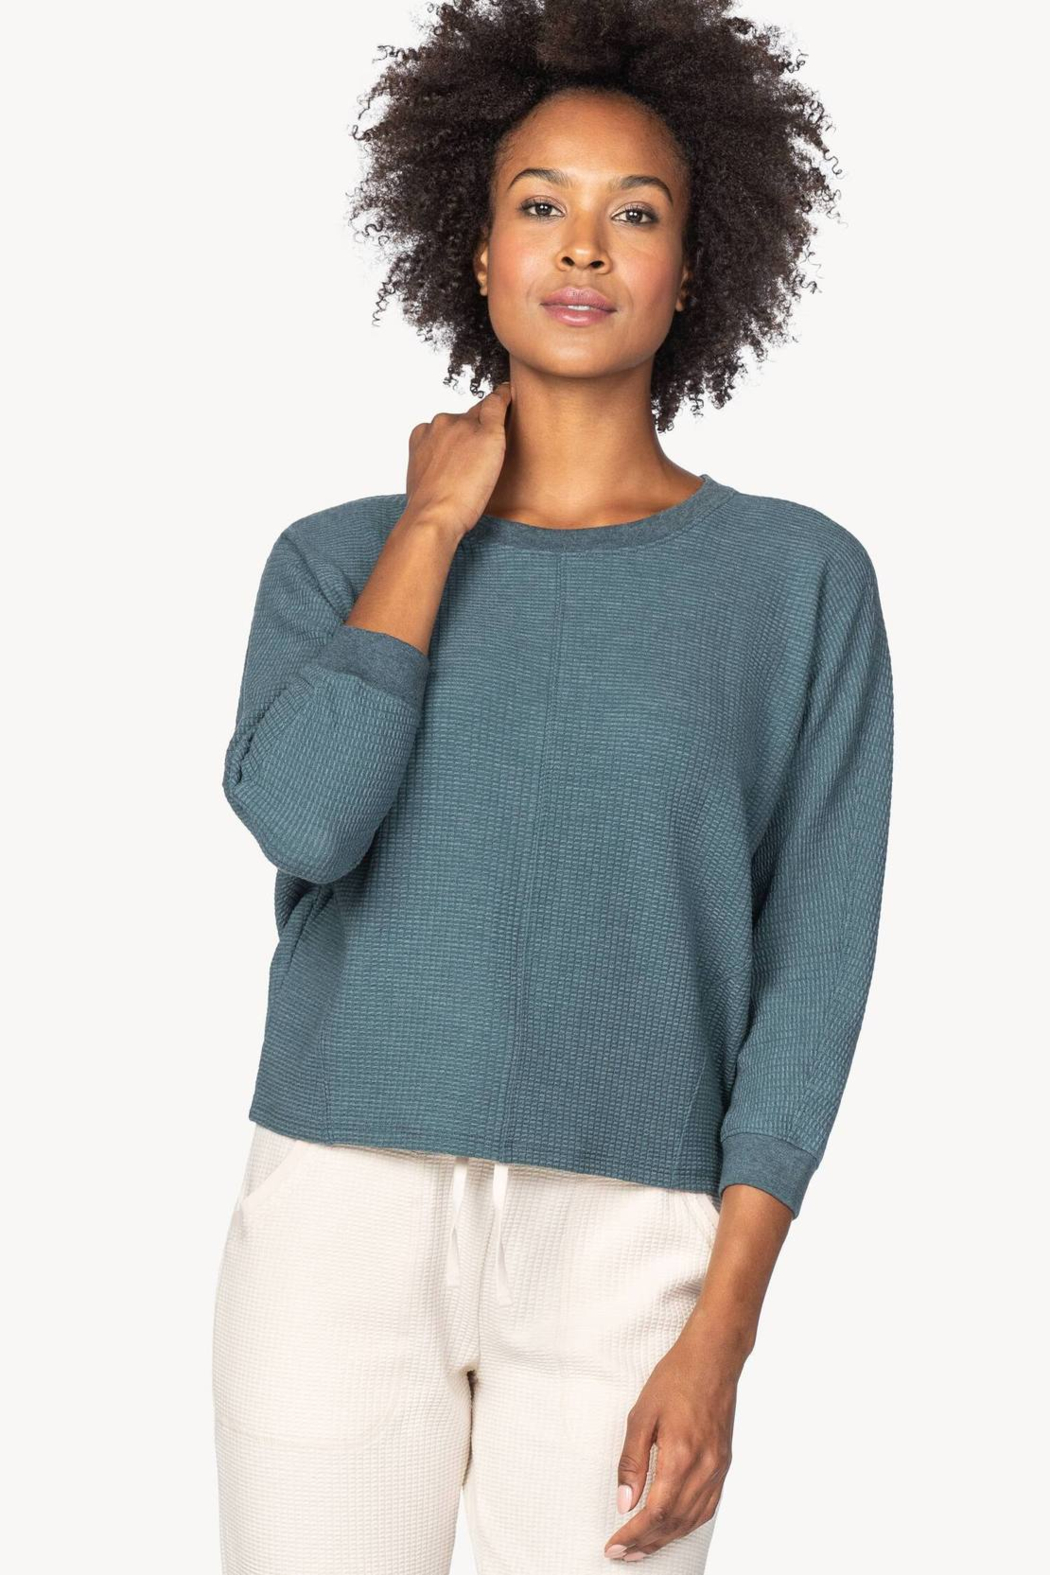 Lilla P PA1393 - Seamed Dolman Top - Front Cropped Image